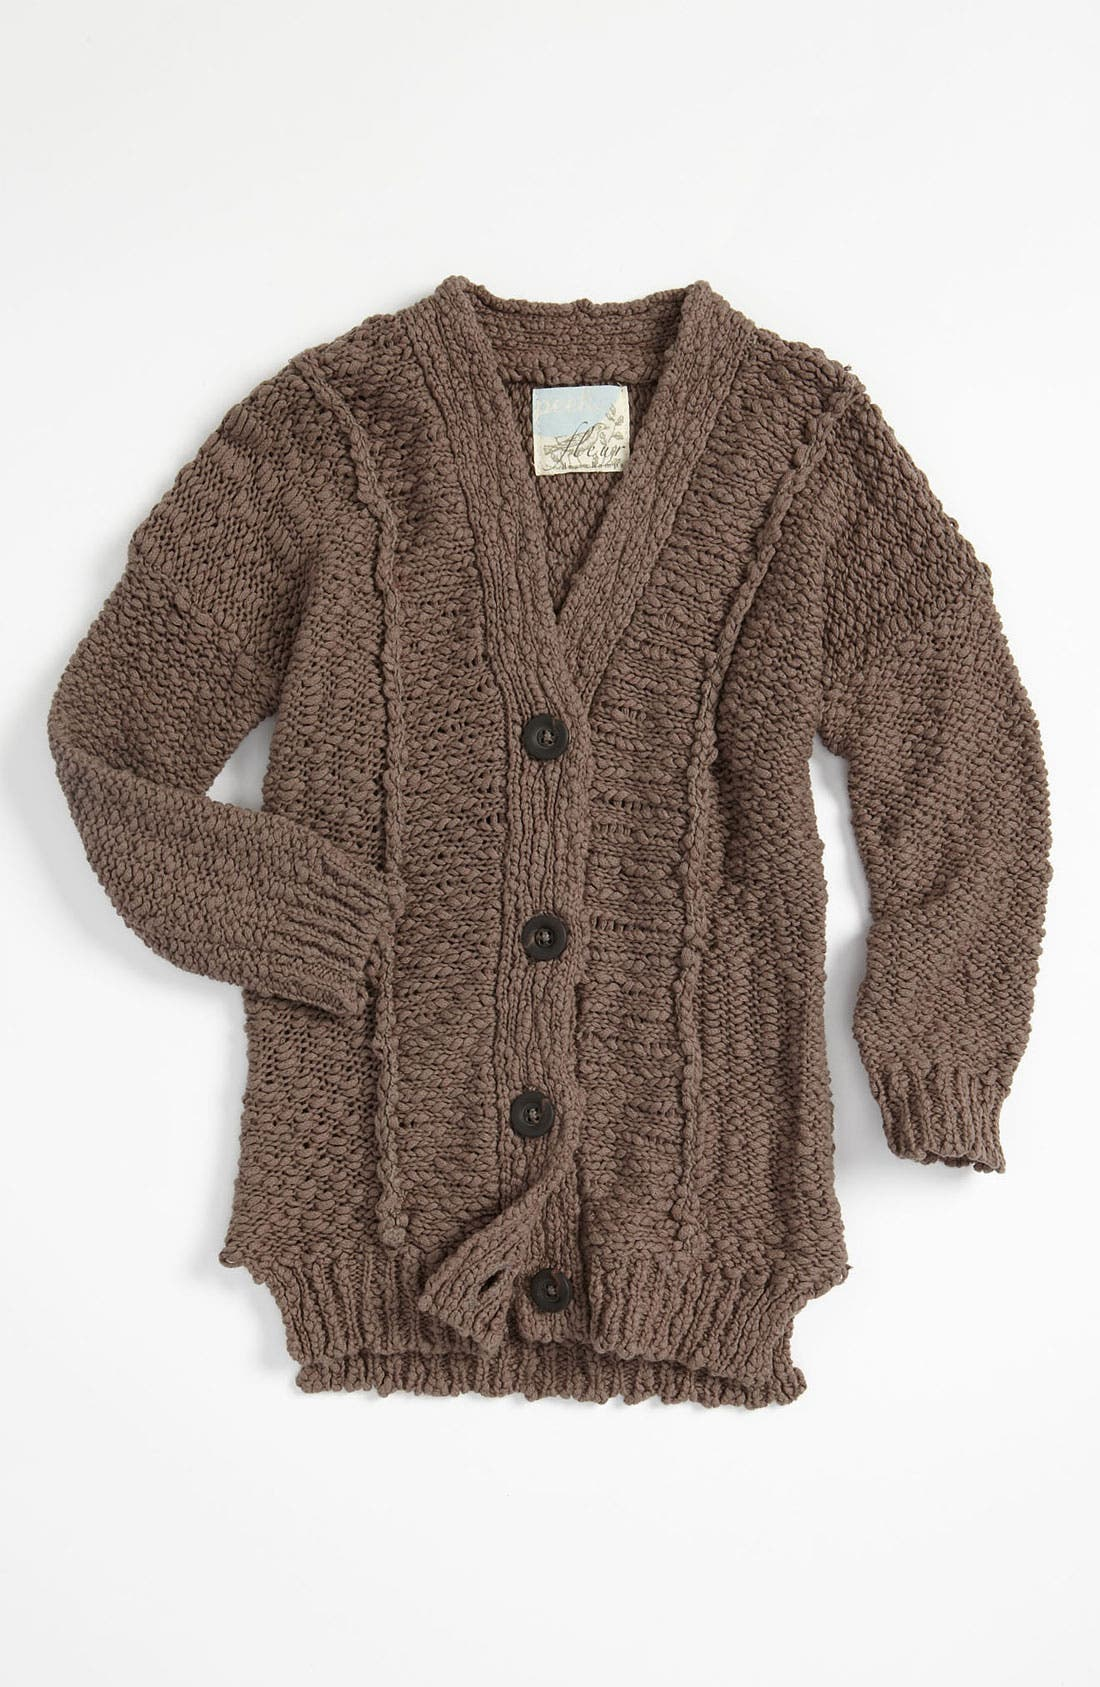 Alternate Image 1 Selected - Peek Fisherman Cardigan (Toddler, Little Girls & Big Girls)